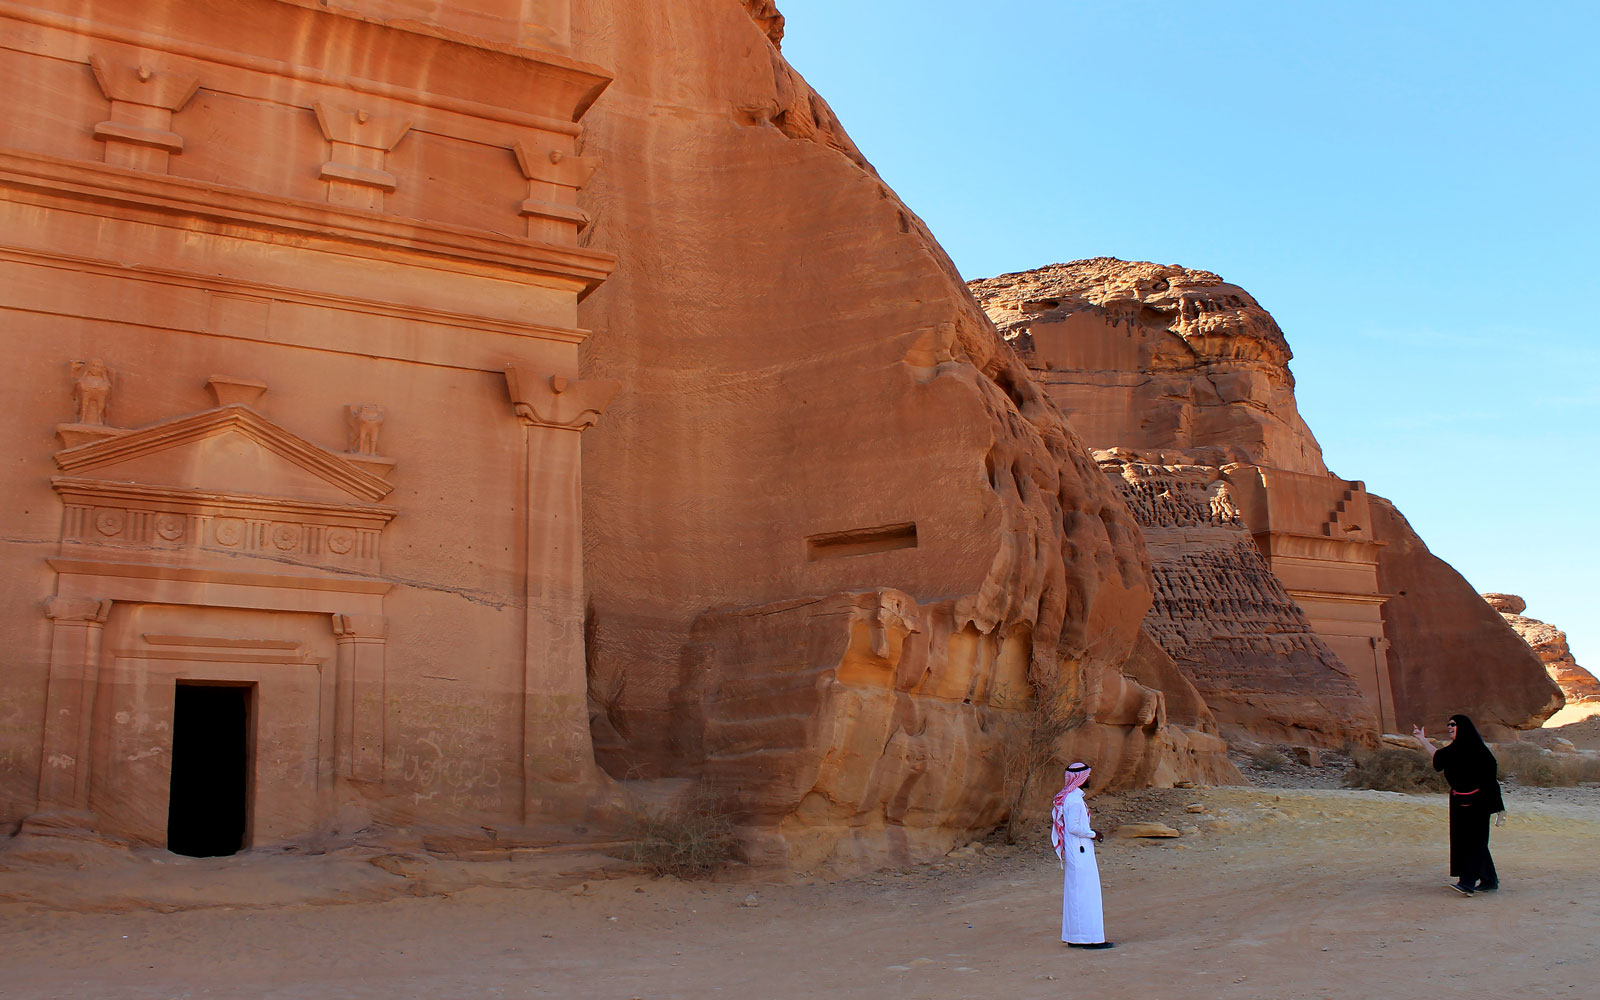 This Ancient City in Saudi Arabia Is an Archaeological Wonder